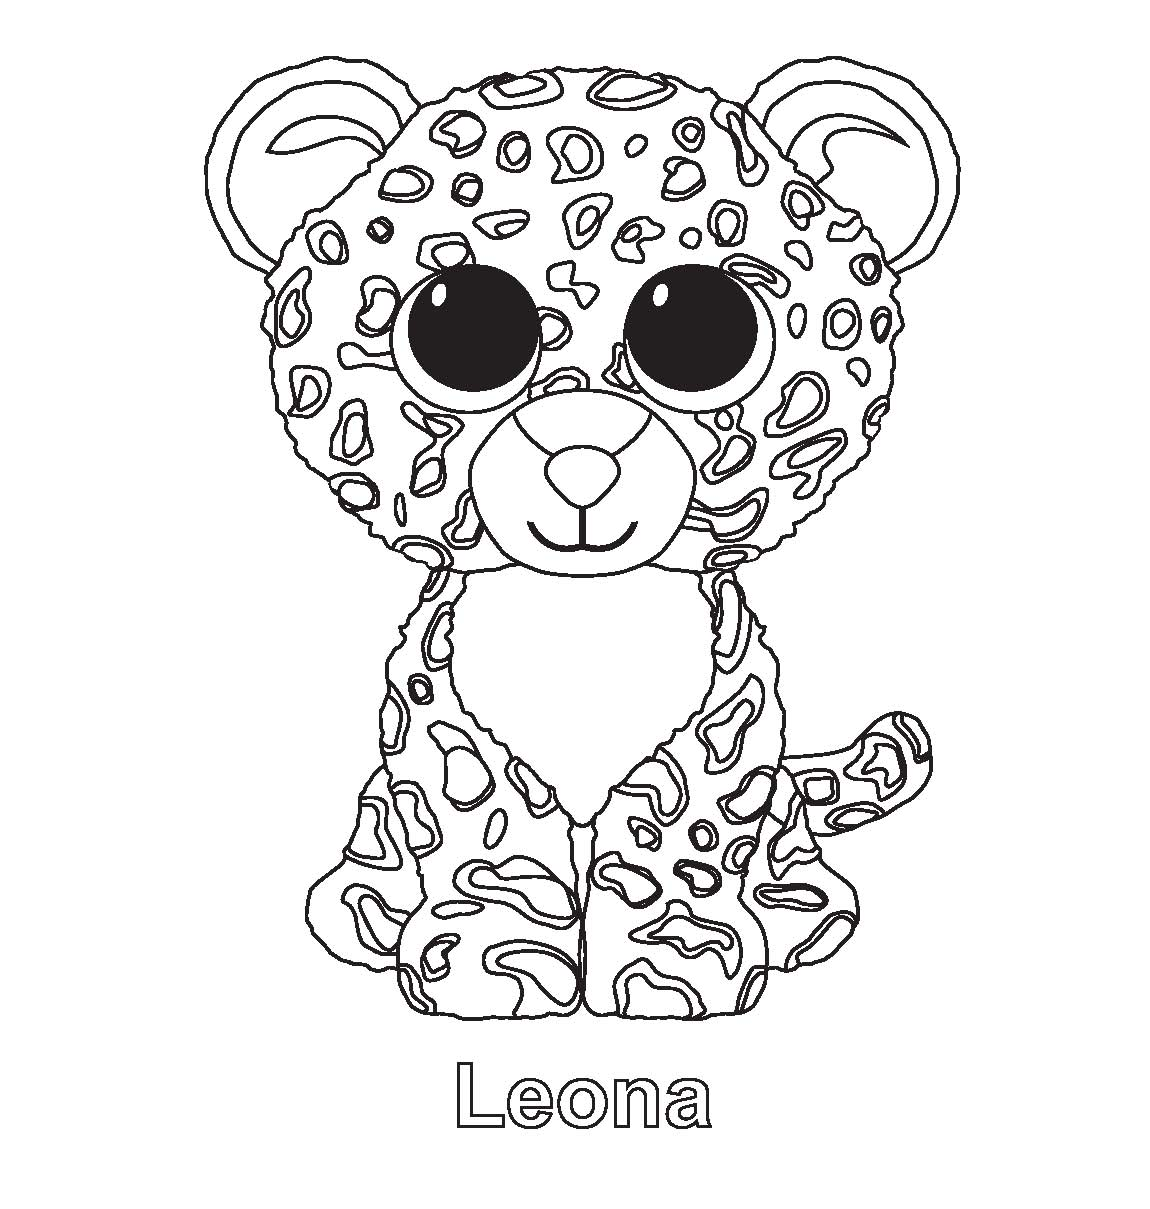 Coloring pages italy - Beanie Boo Leona Colouring Pages